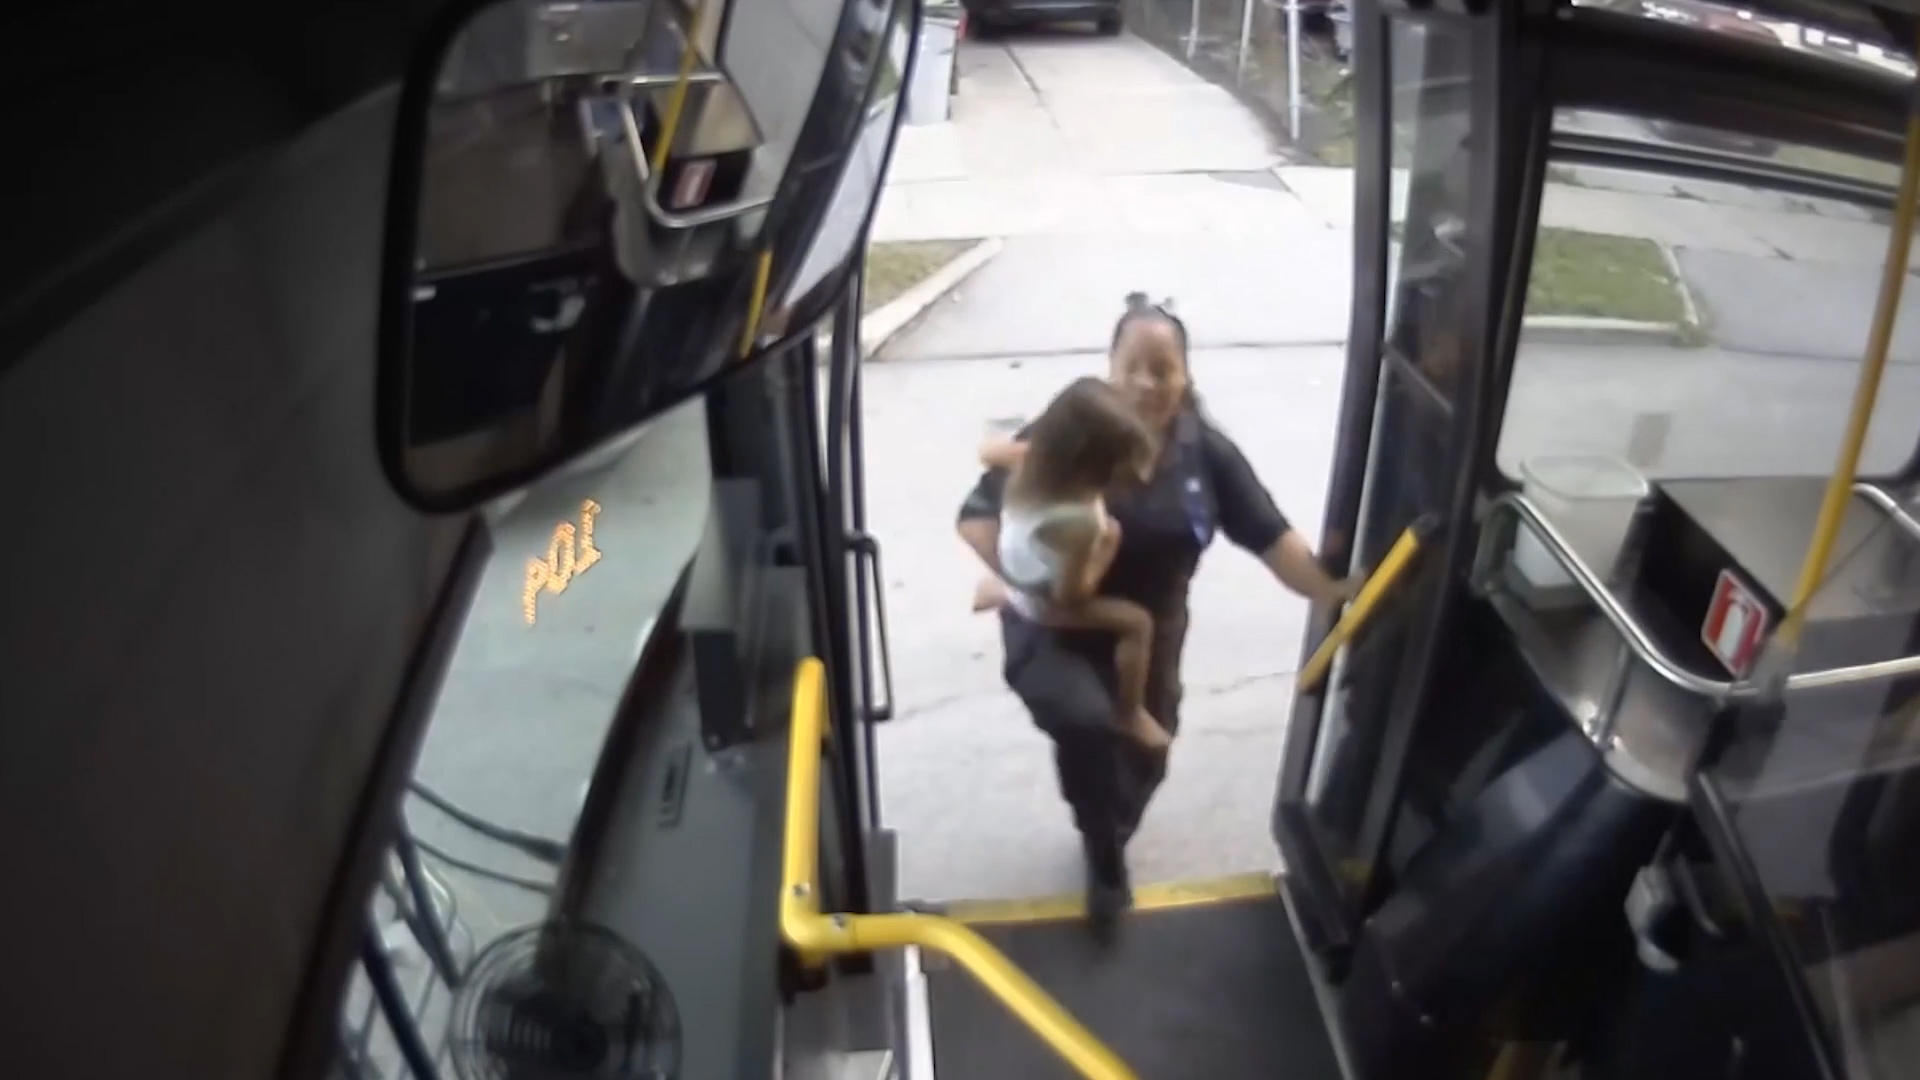 Bus driver rescues young child